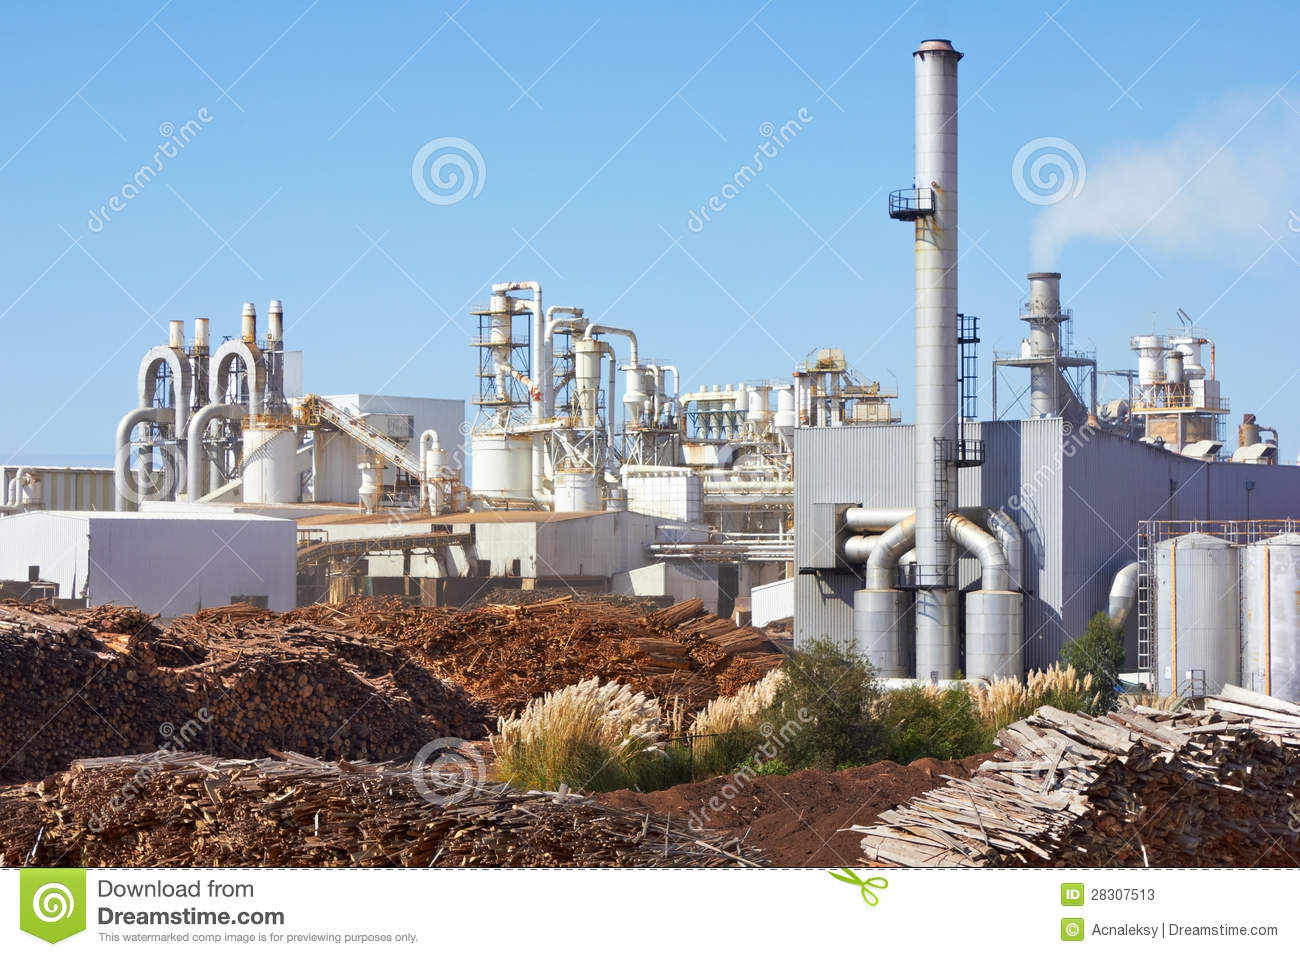 essay about pollution by factory Industrial pollution is one of the primary sources of environmental contamination  according to the us environmental protection agency (epa),.